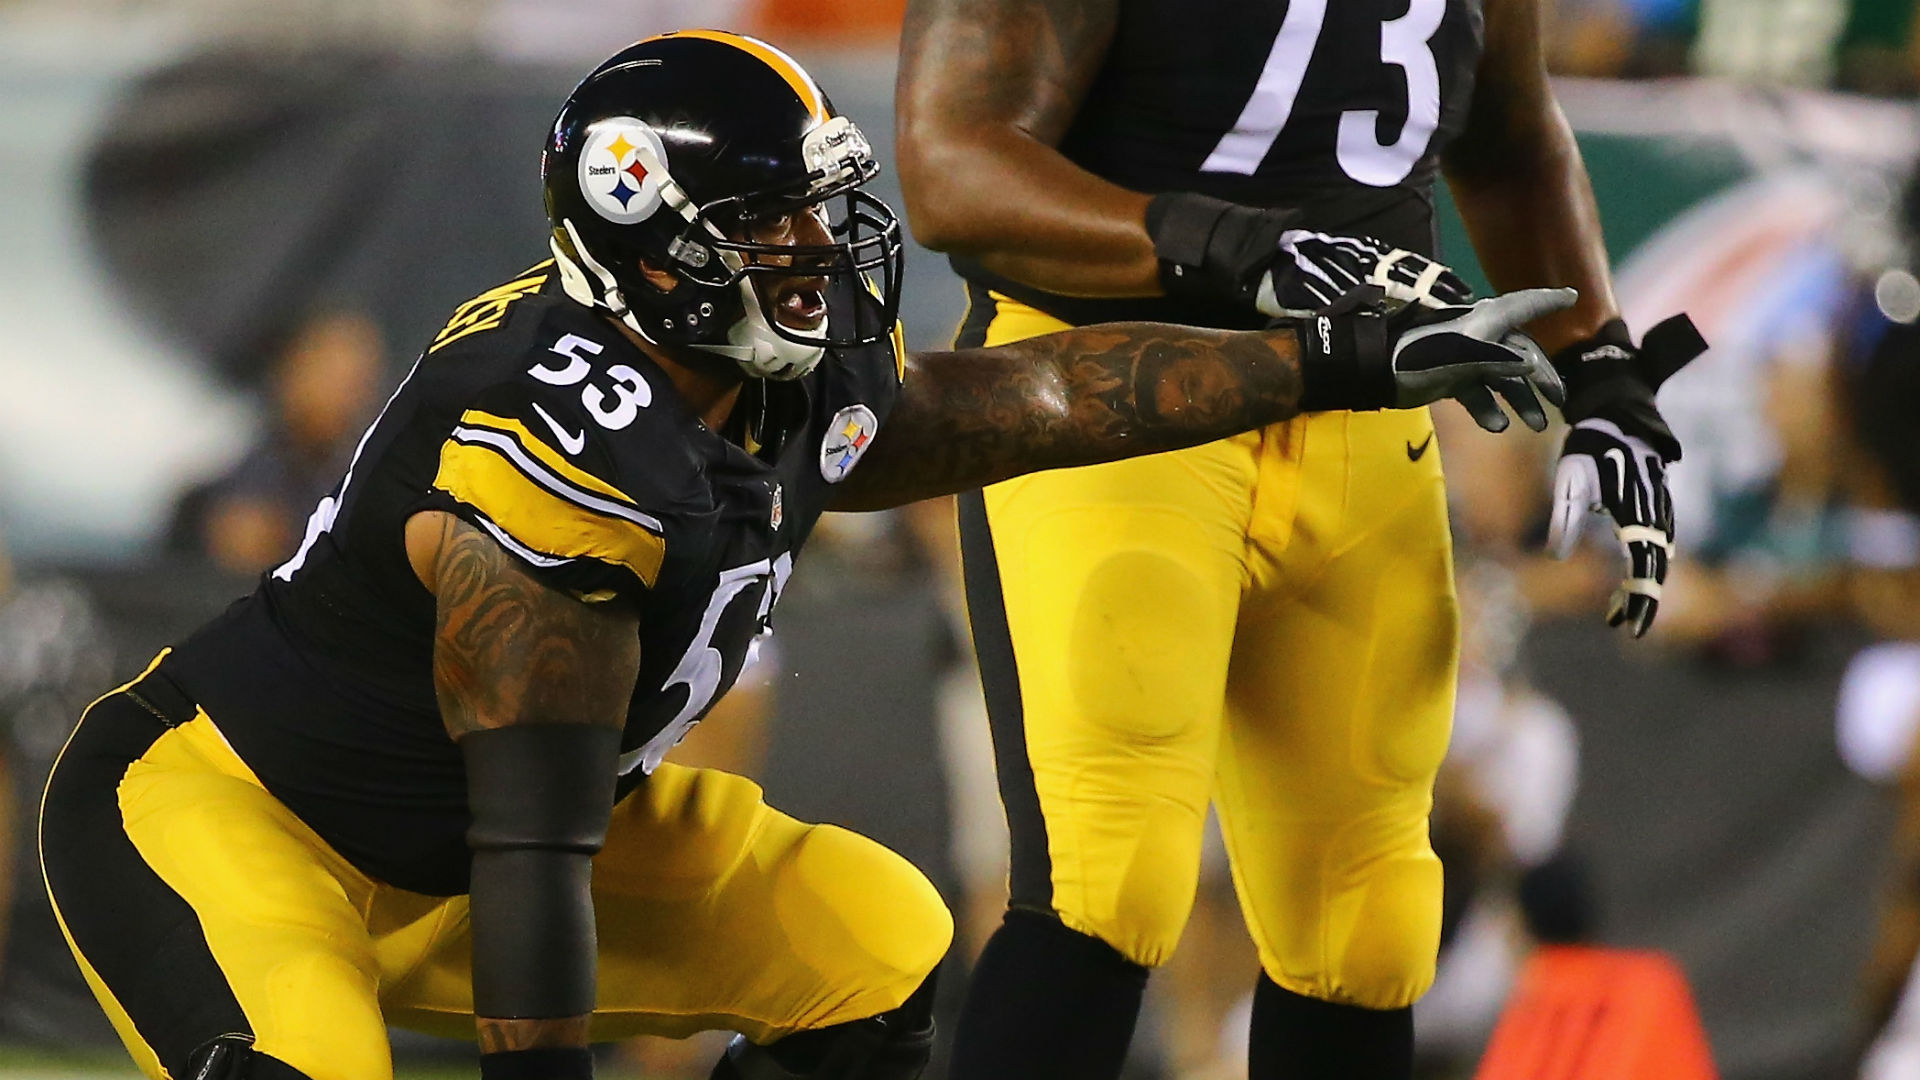 Steelers Maurkice Pouncey Thursday games are hard on the big